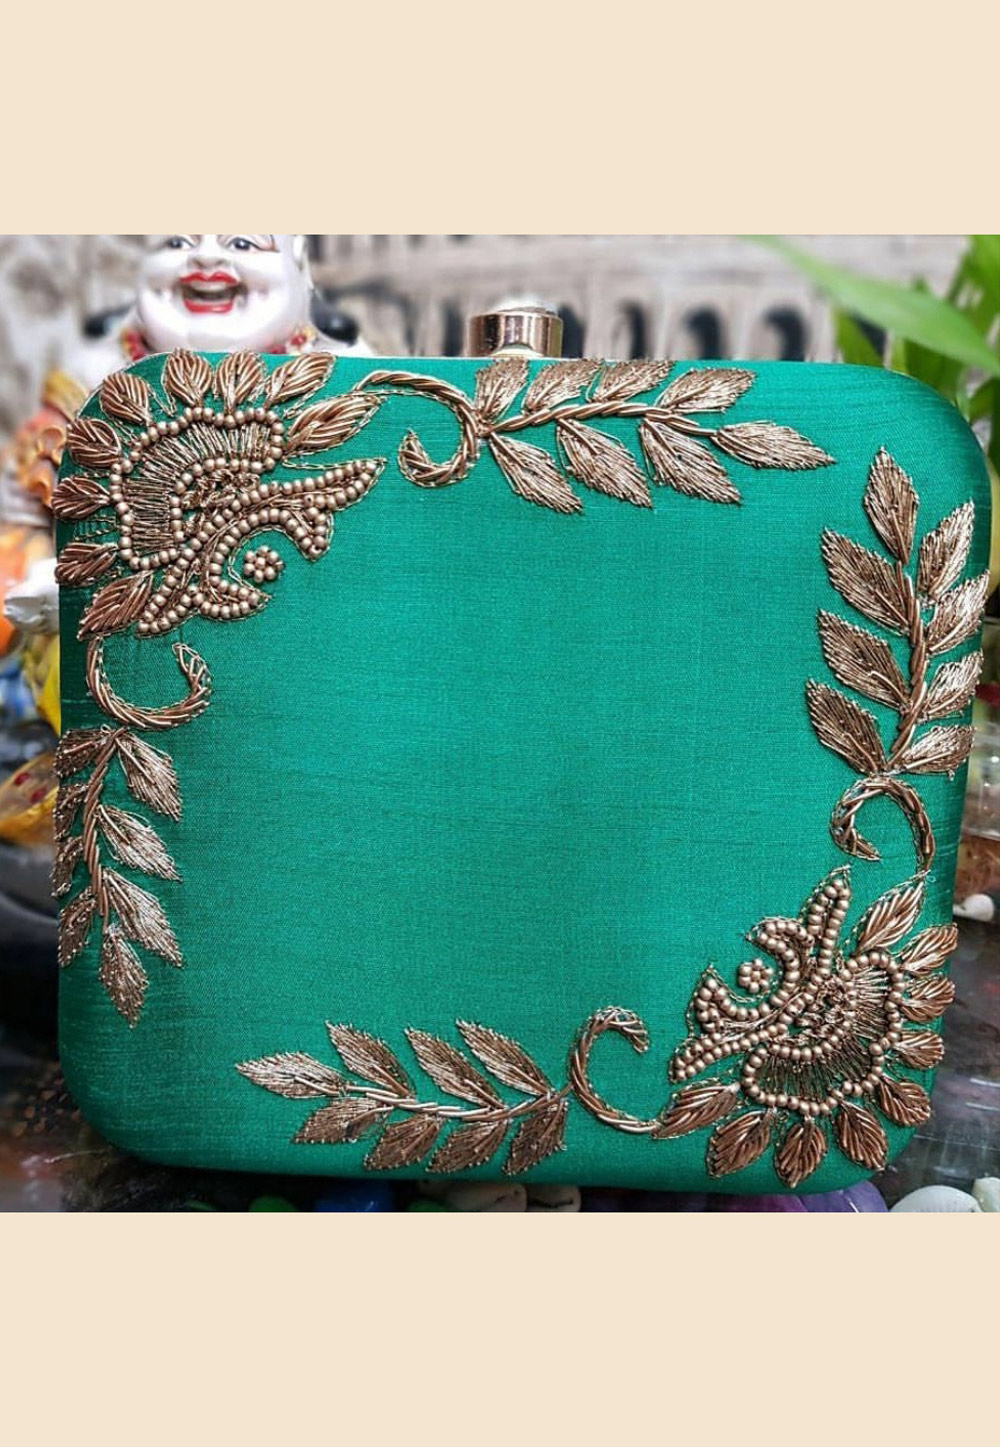 Teal Green Synthetic Embroidered Clutch 187939